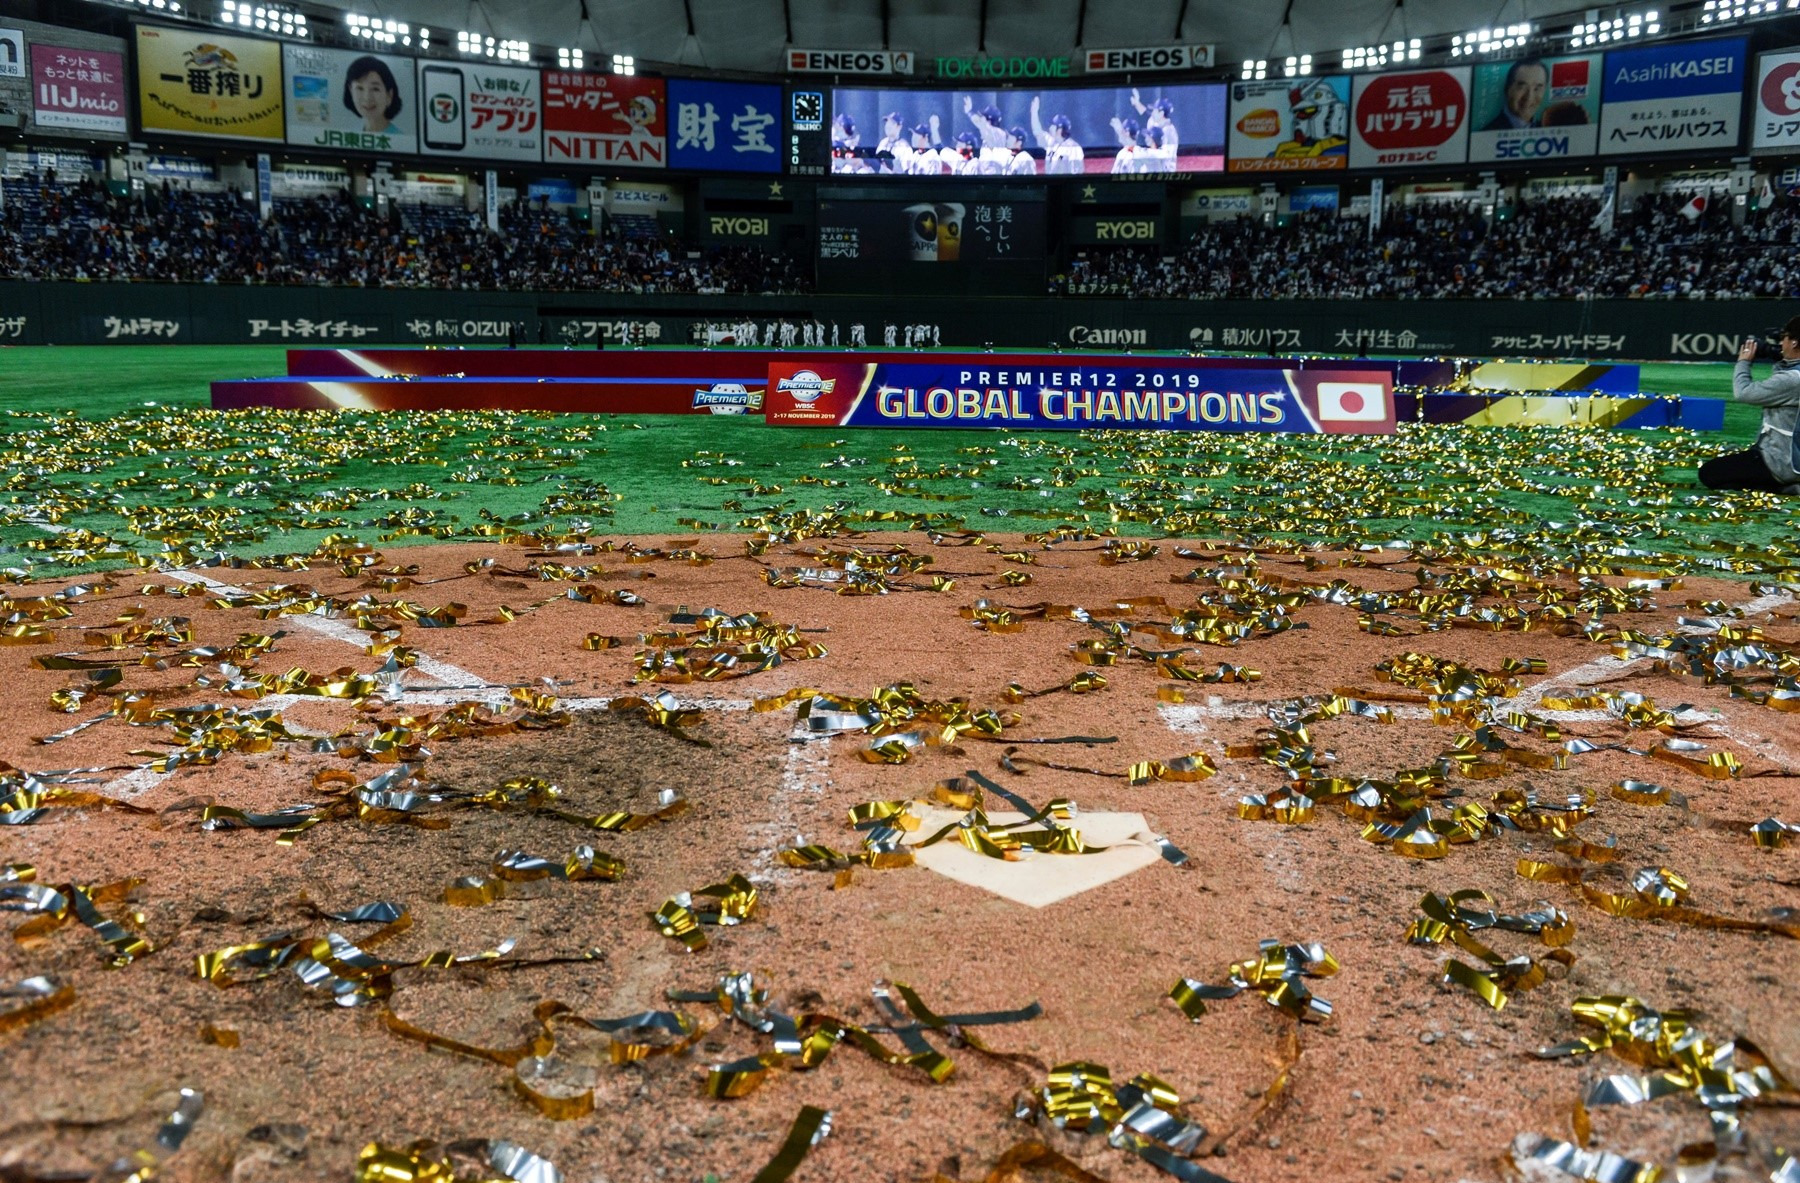 The WBSC Premier12 2019 is over